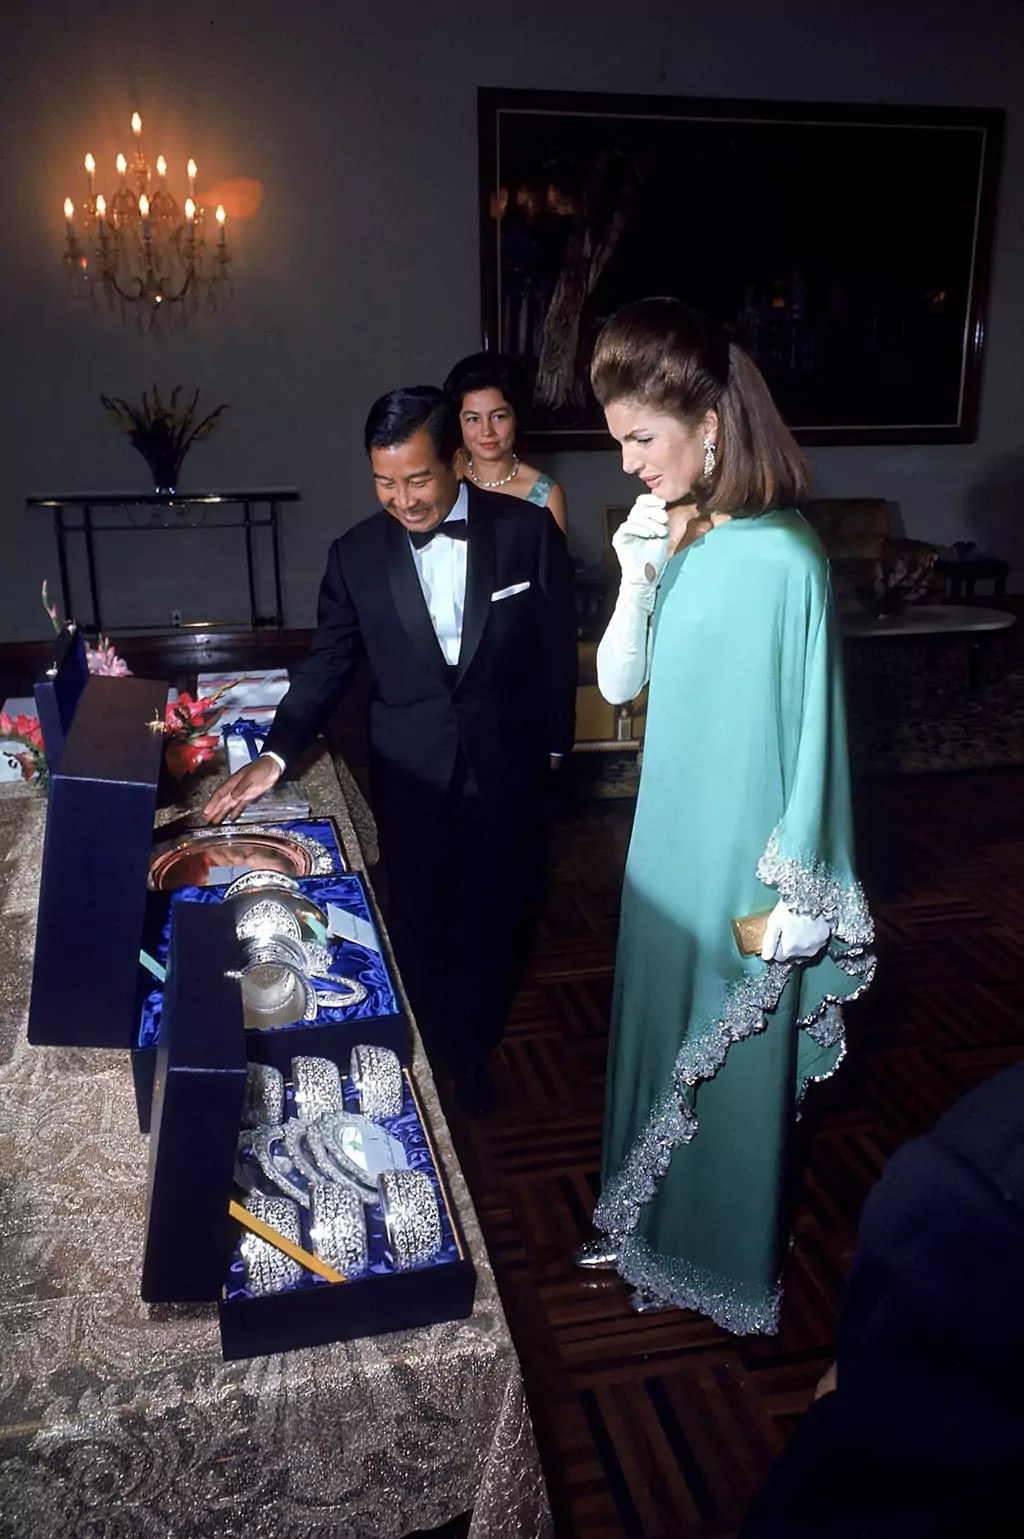 Jackie Kennedy with Prince Norodom Sihanouk and his wife Monique